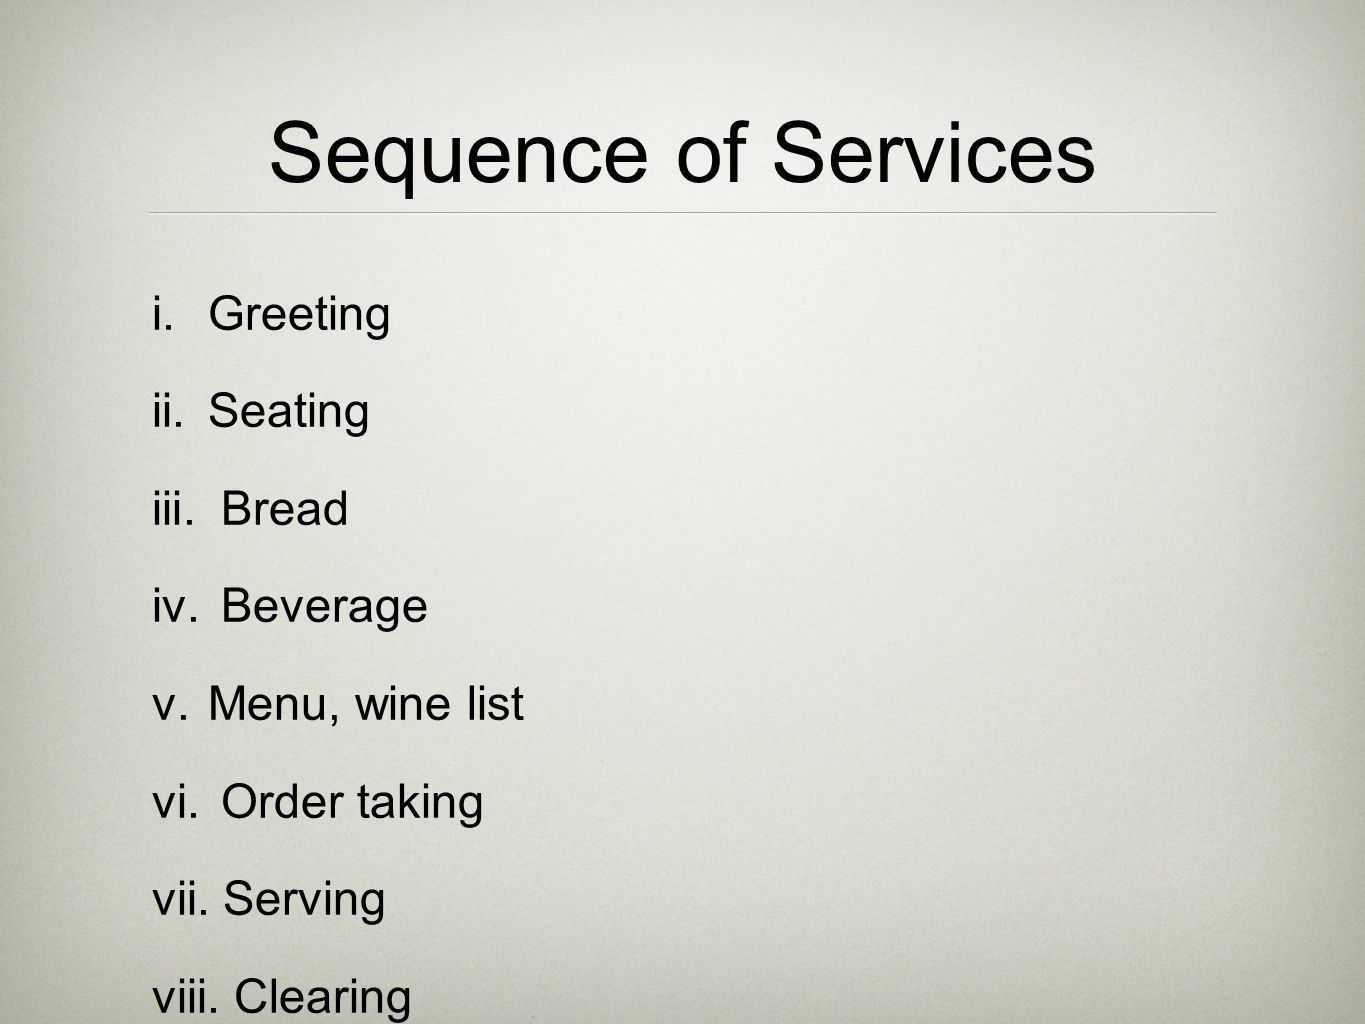 i. Greeting ii. Seating iii. Bread iv. Beverage v.